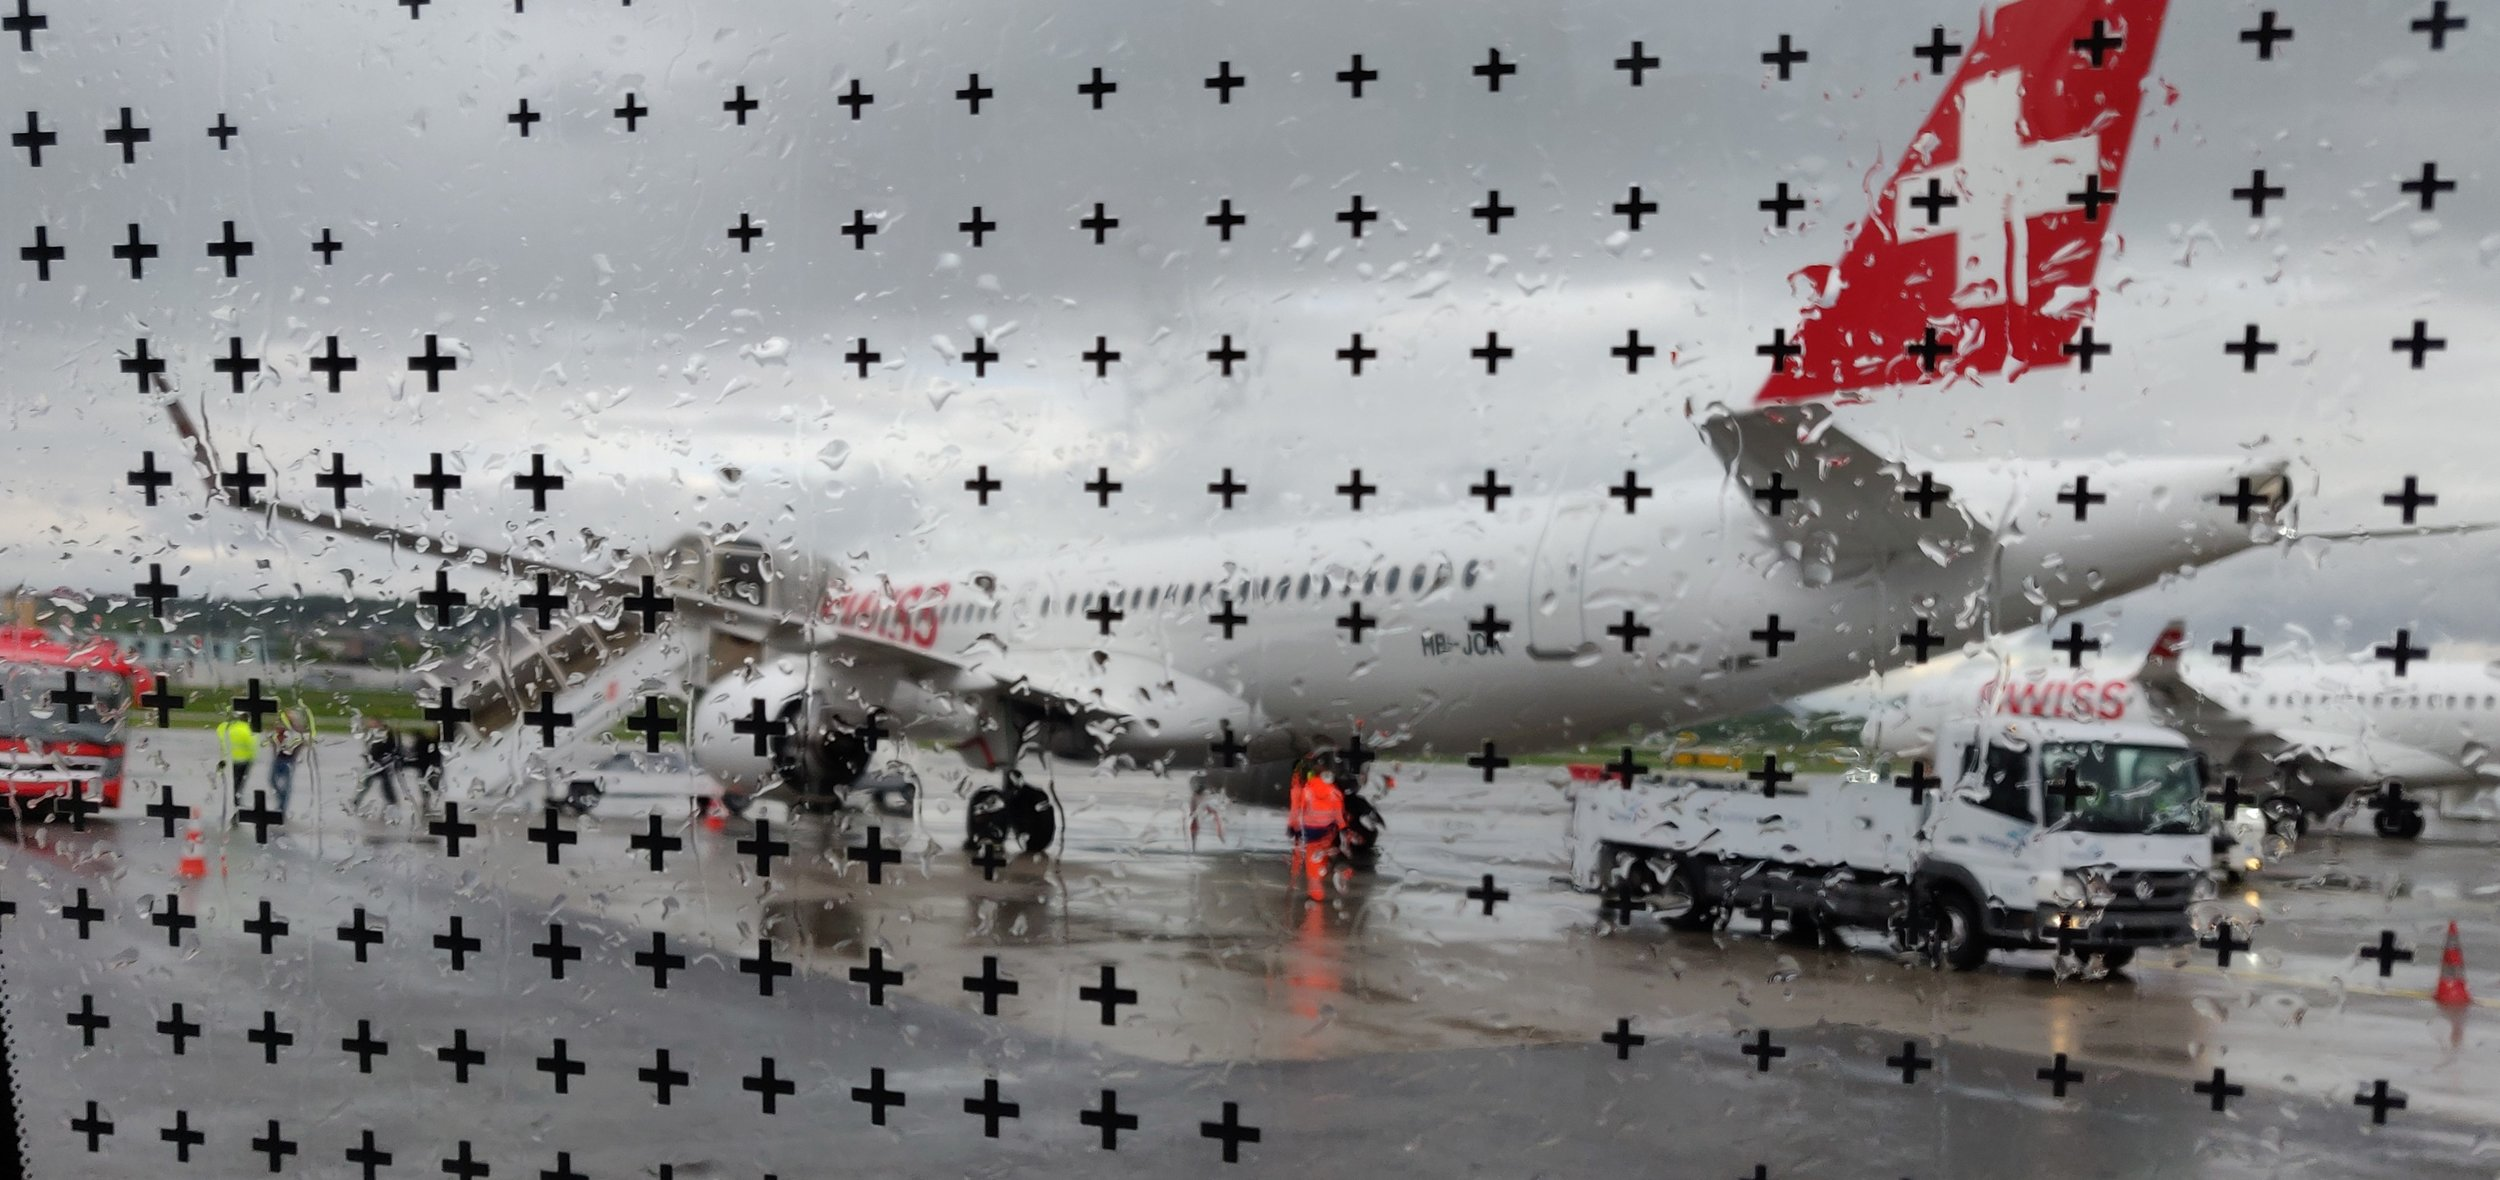 Swiss Airlines Business Class A220